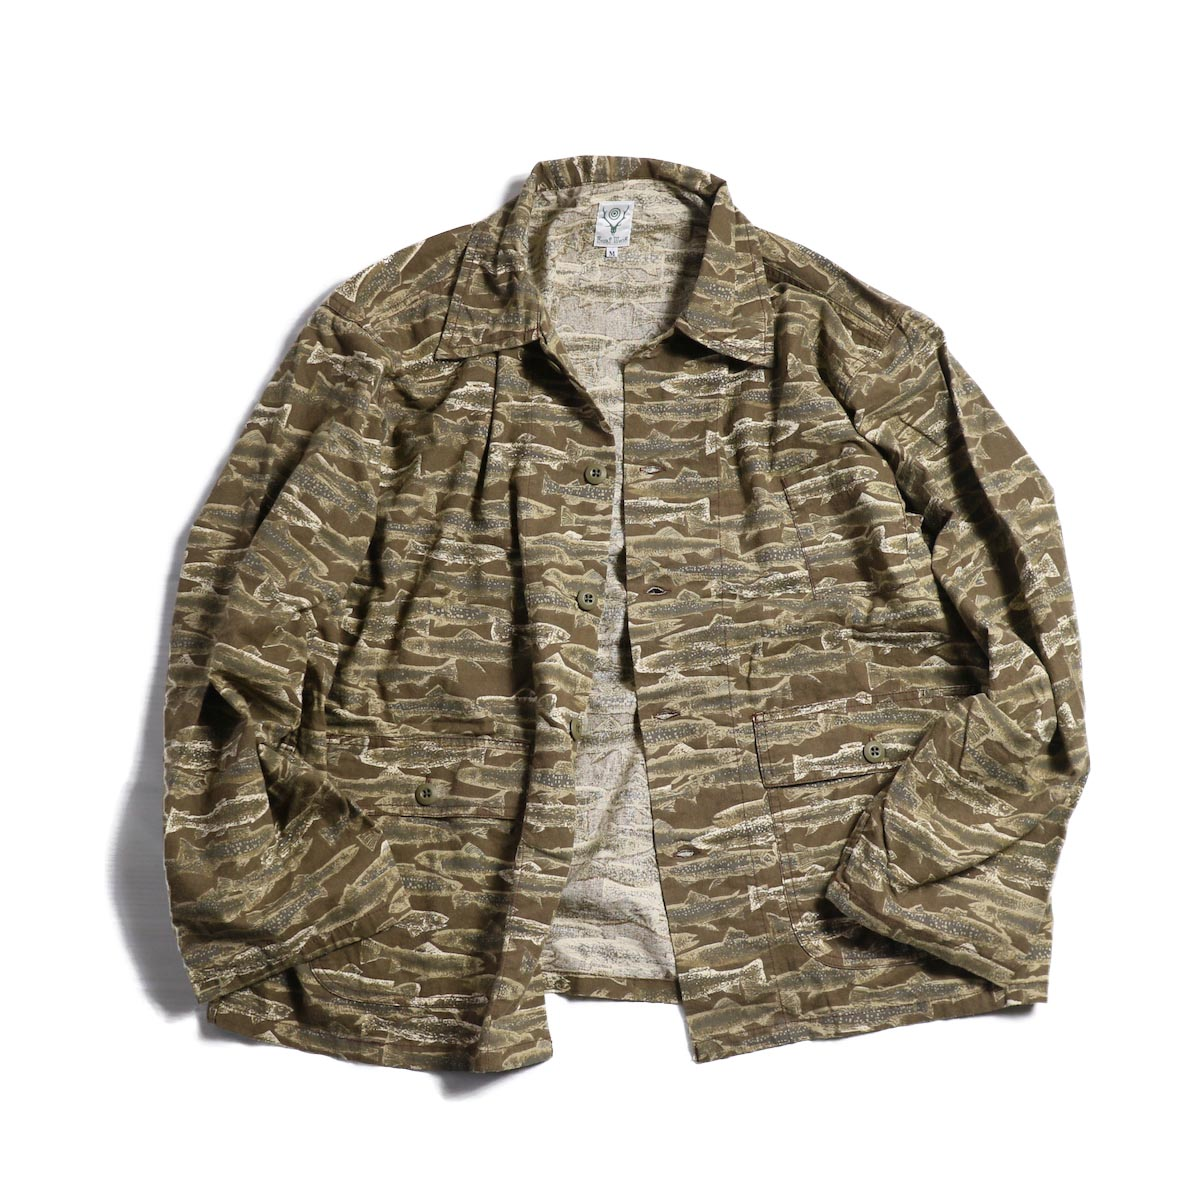 SOUTH2 WEST8 / Hunting Shirt Printed Flannel/Camouflage -Trout